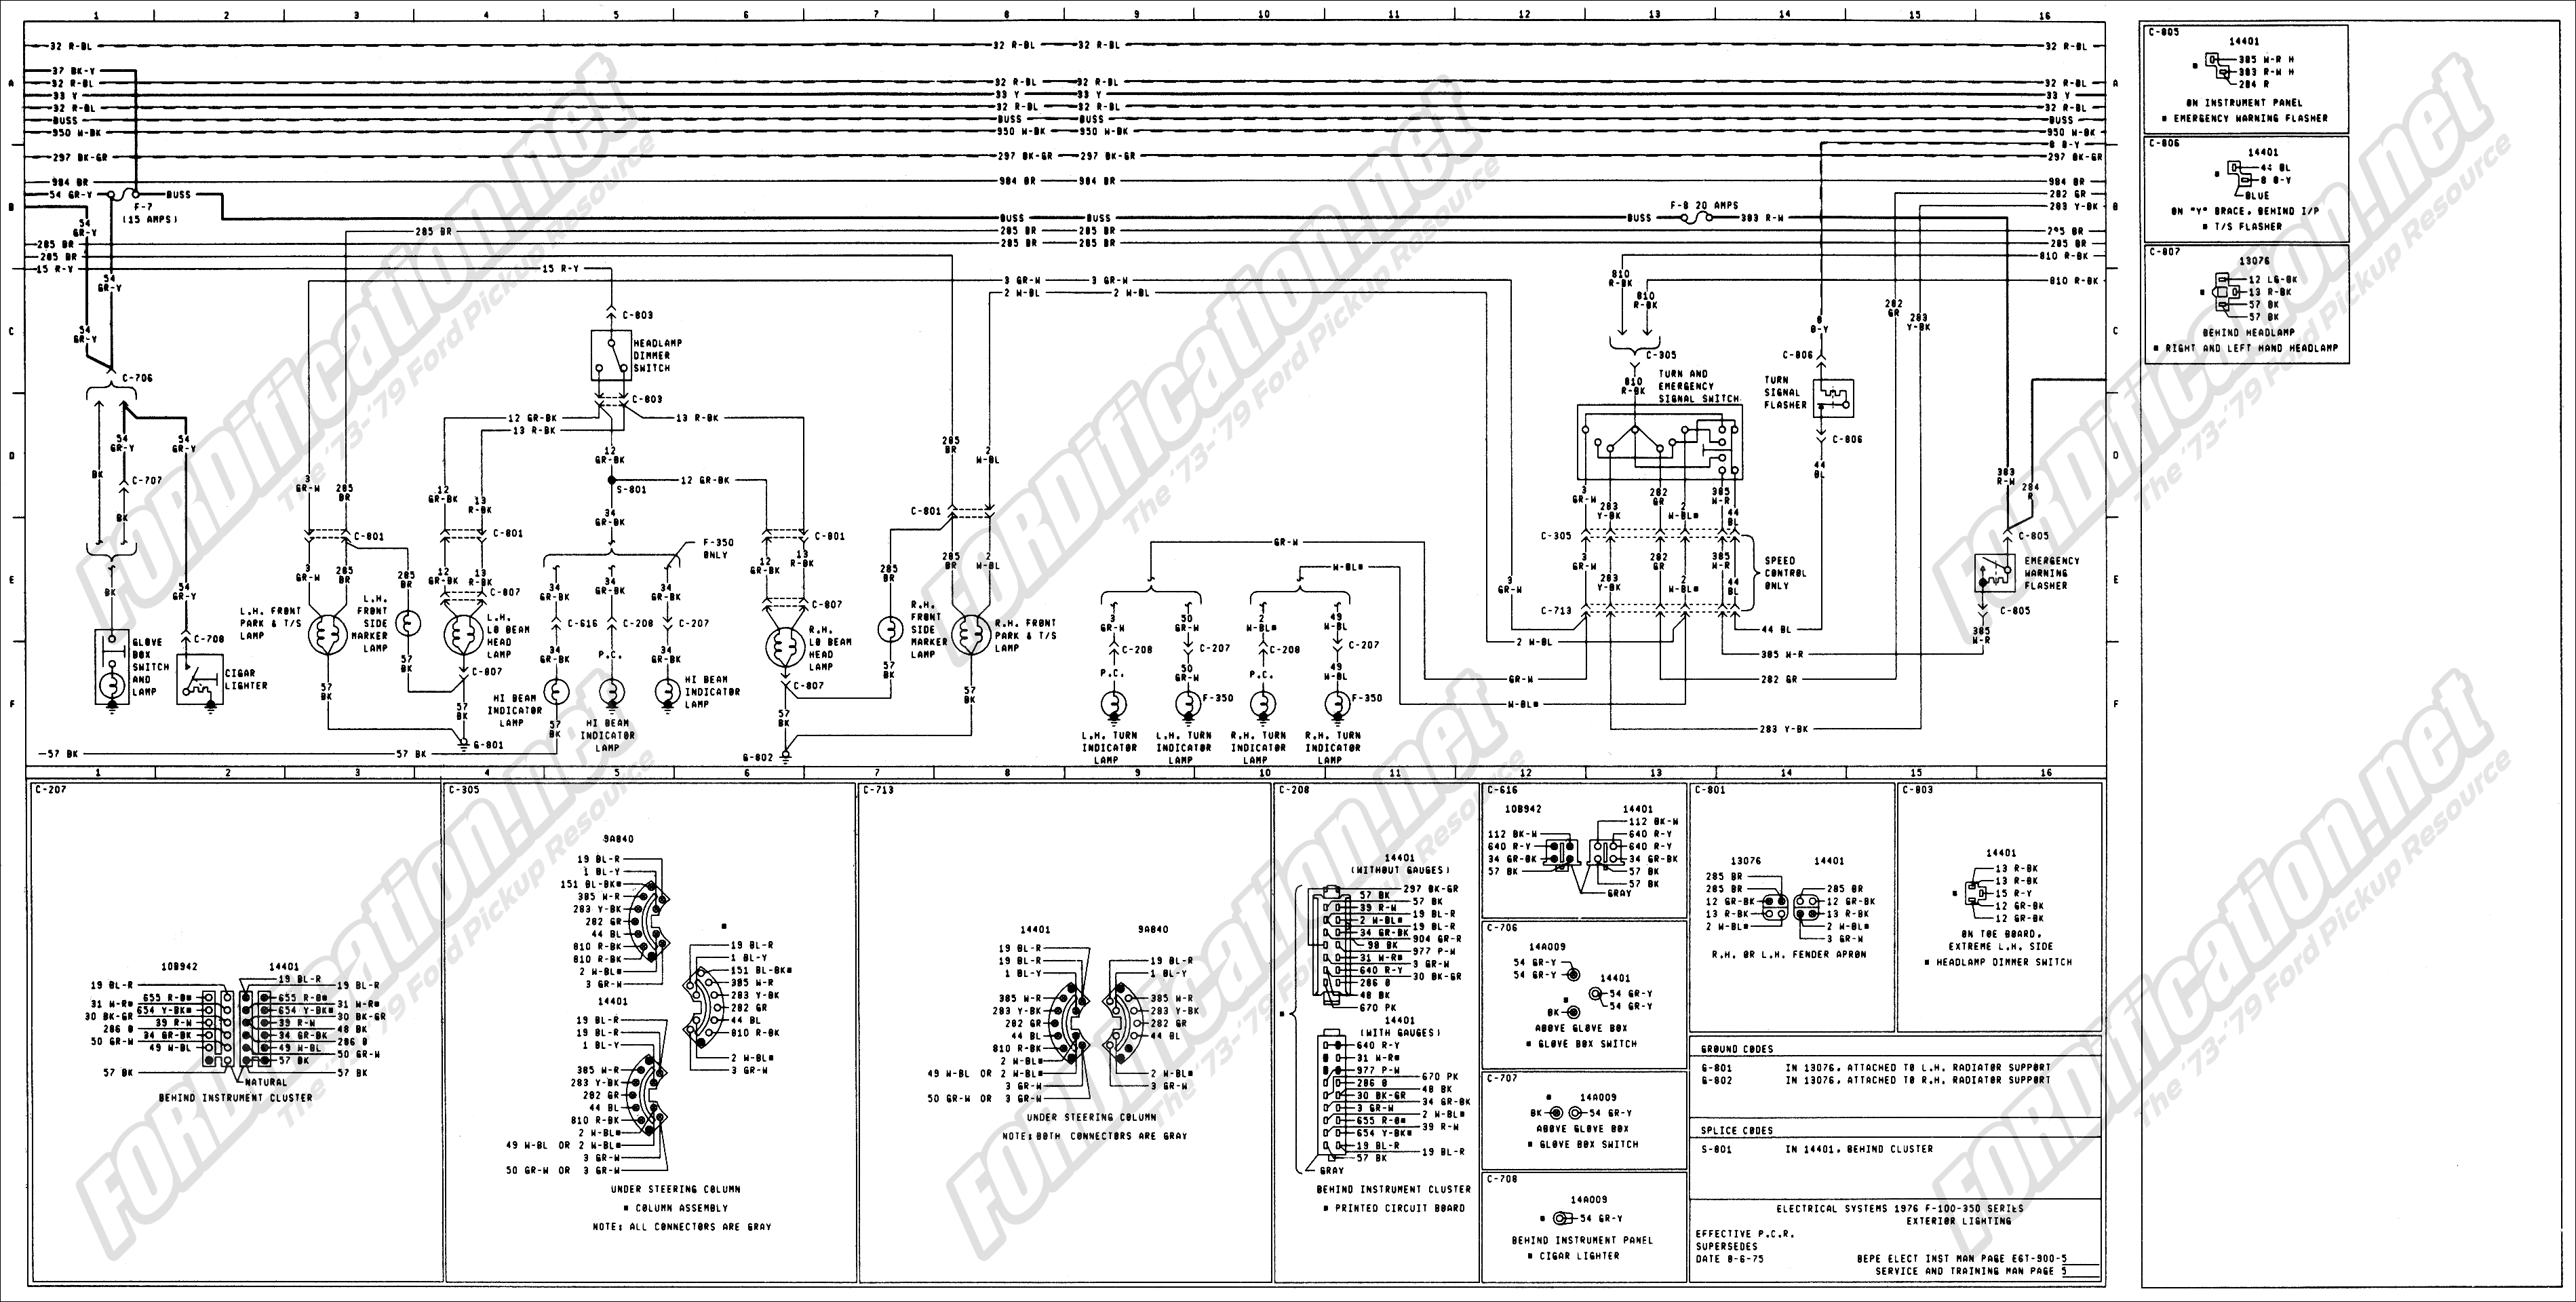 wiring_76master_5of9 1973 1979 ford truck wiring diagrams & schematics fordification net instrument wiring diagram at honlapkeszites.co